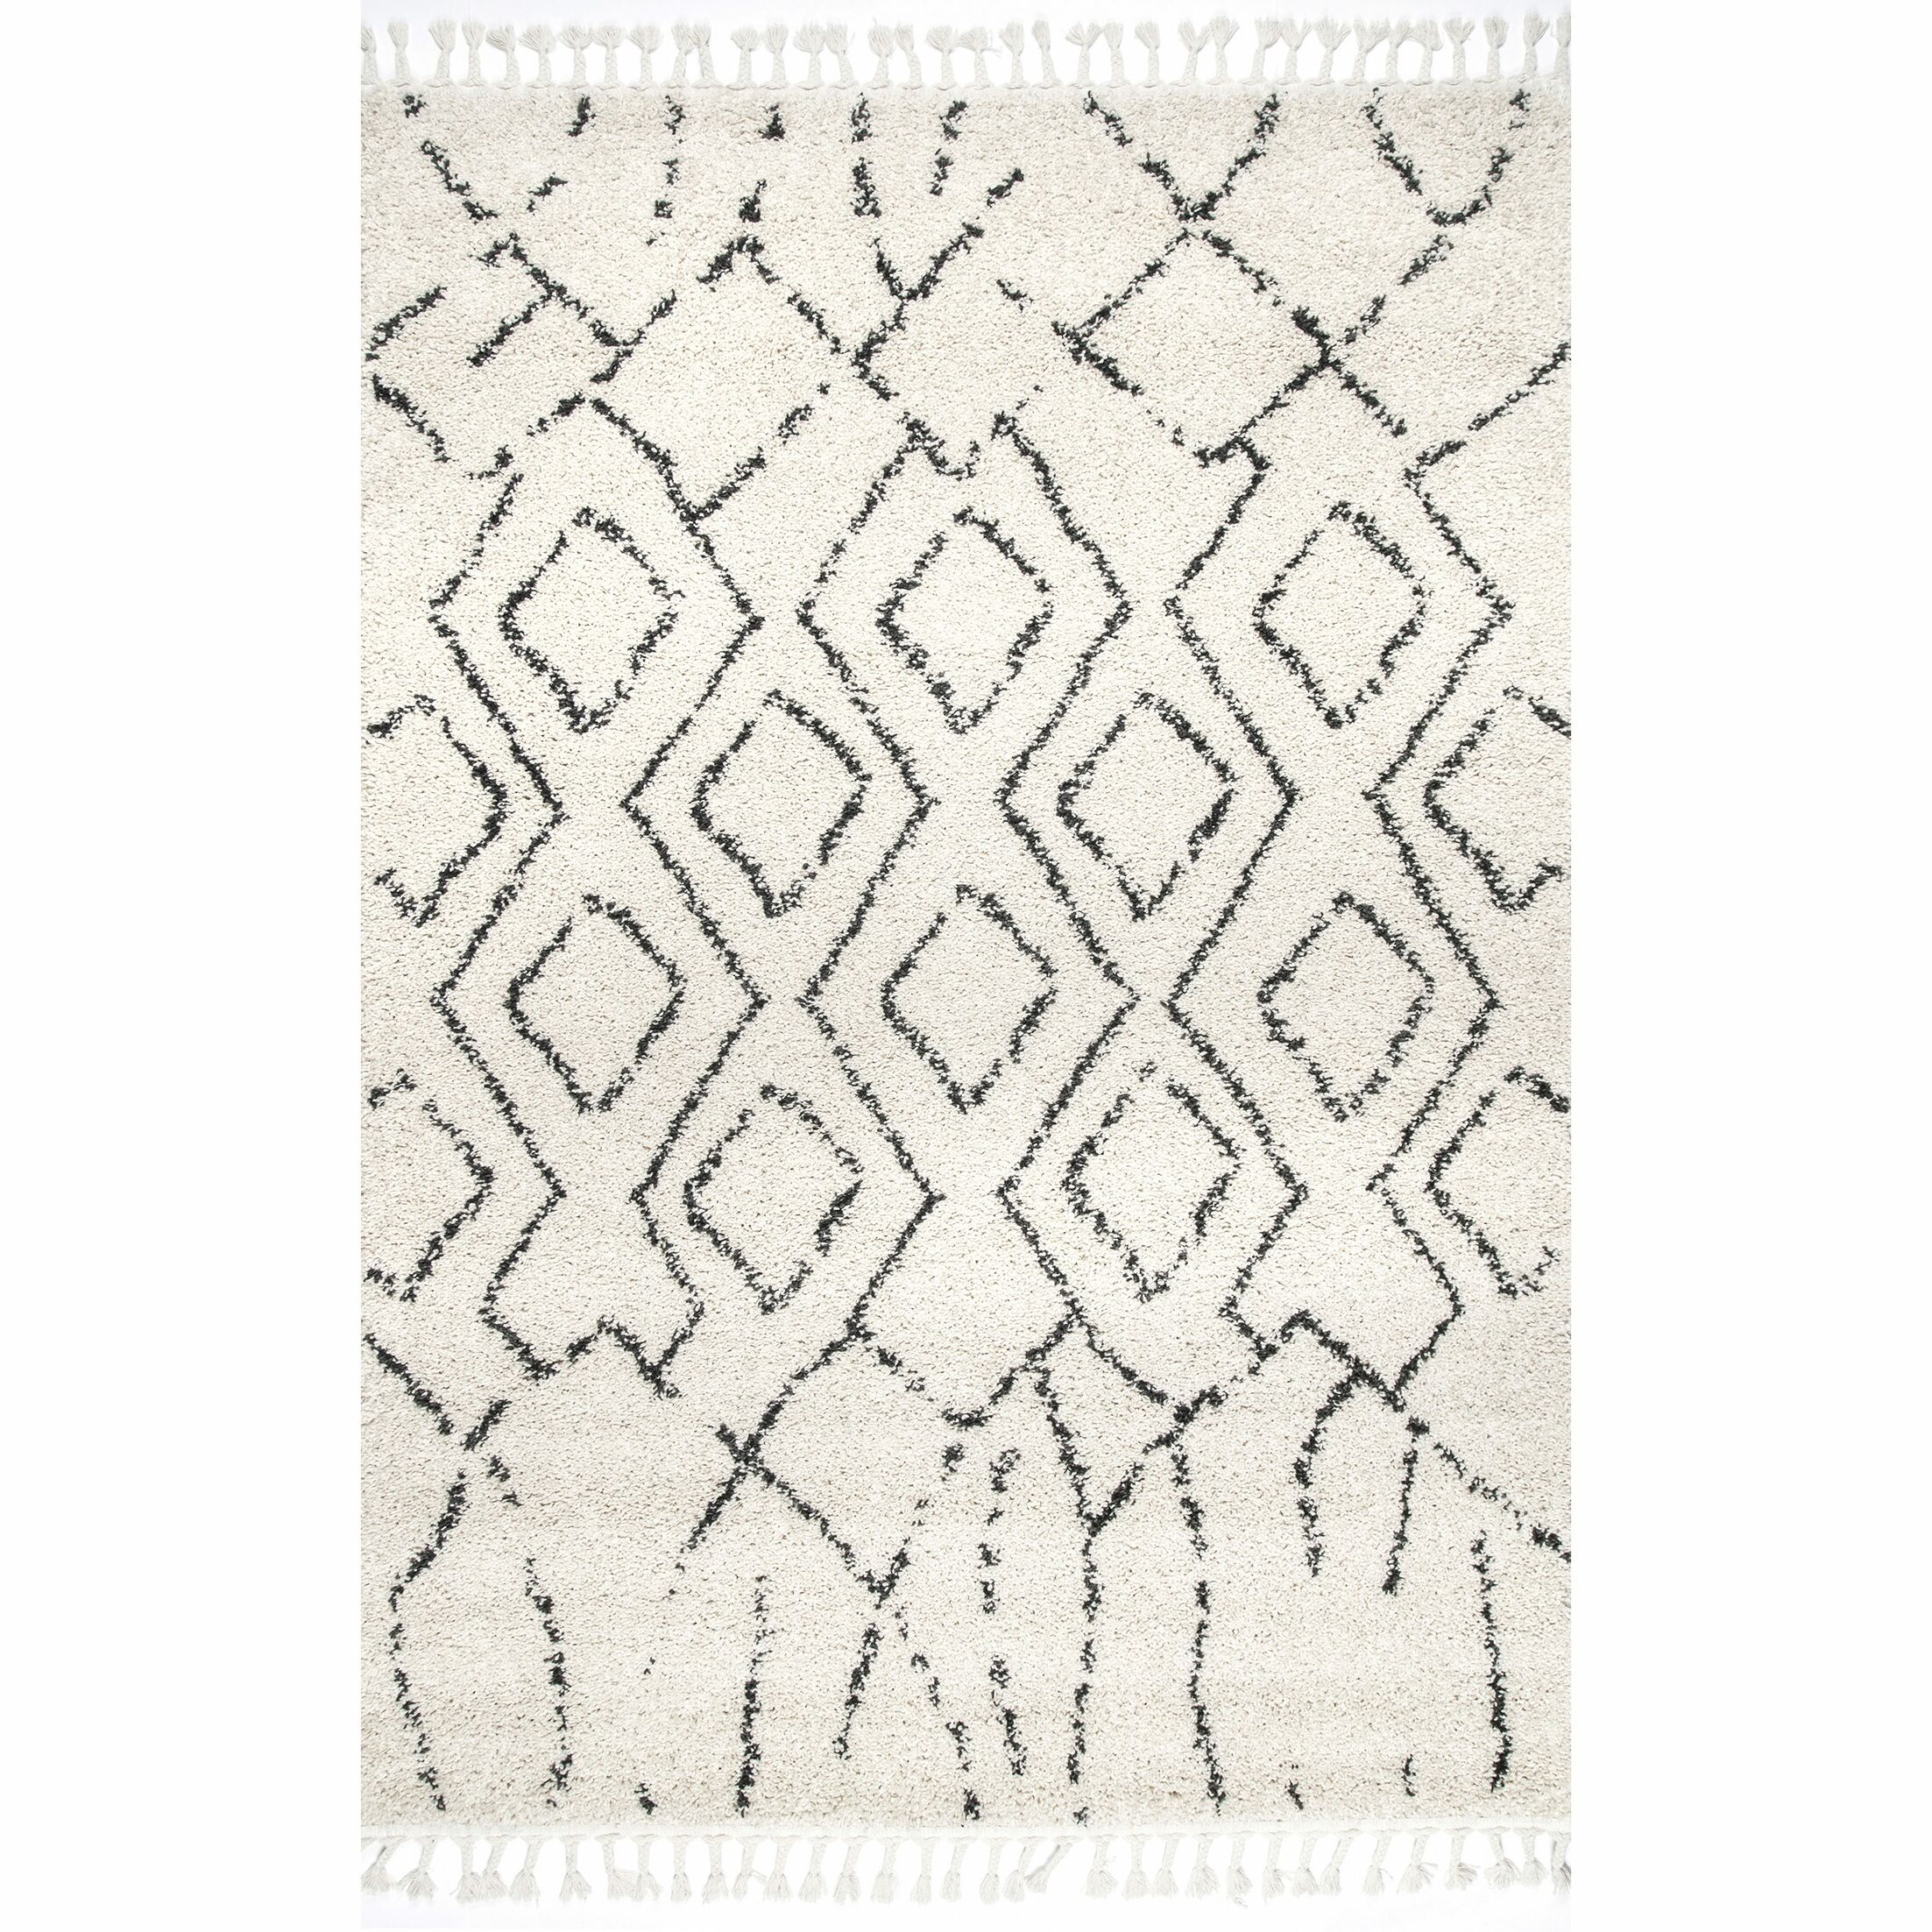 Off White Area Rug Rug Size: Rectangle 4' x 6'